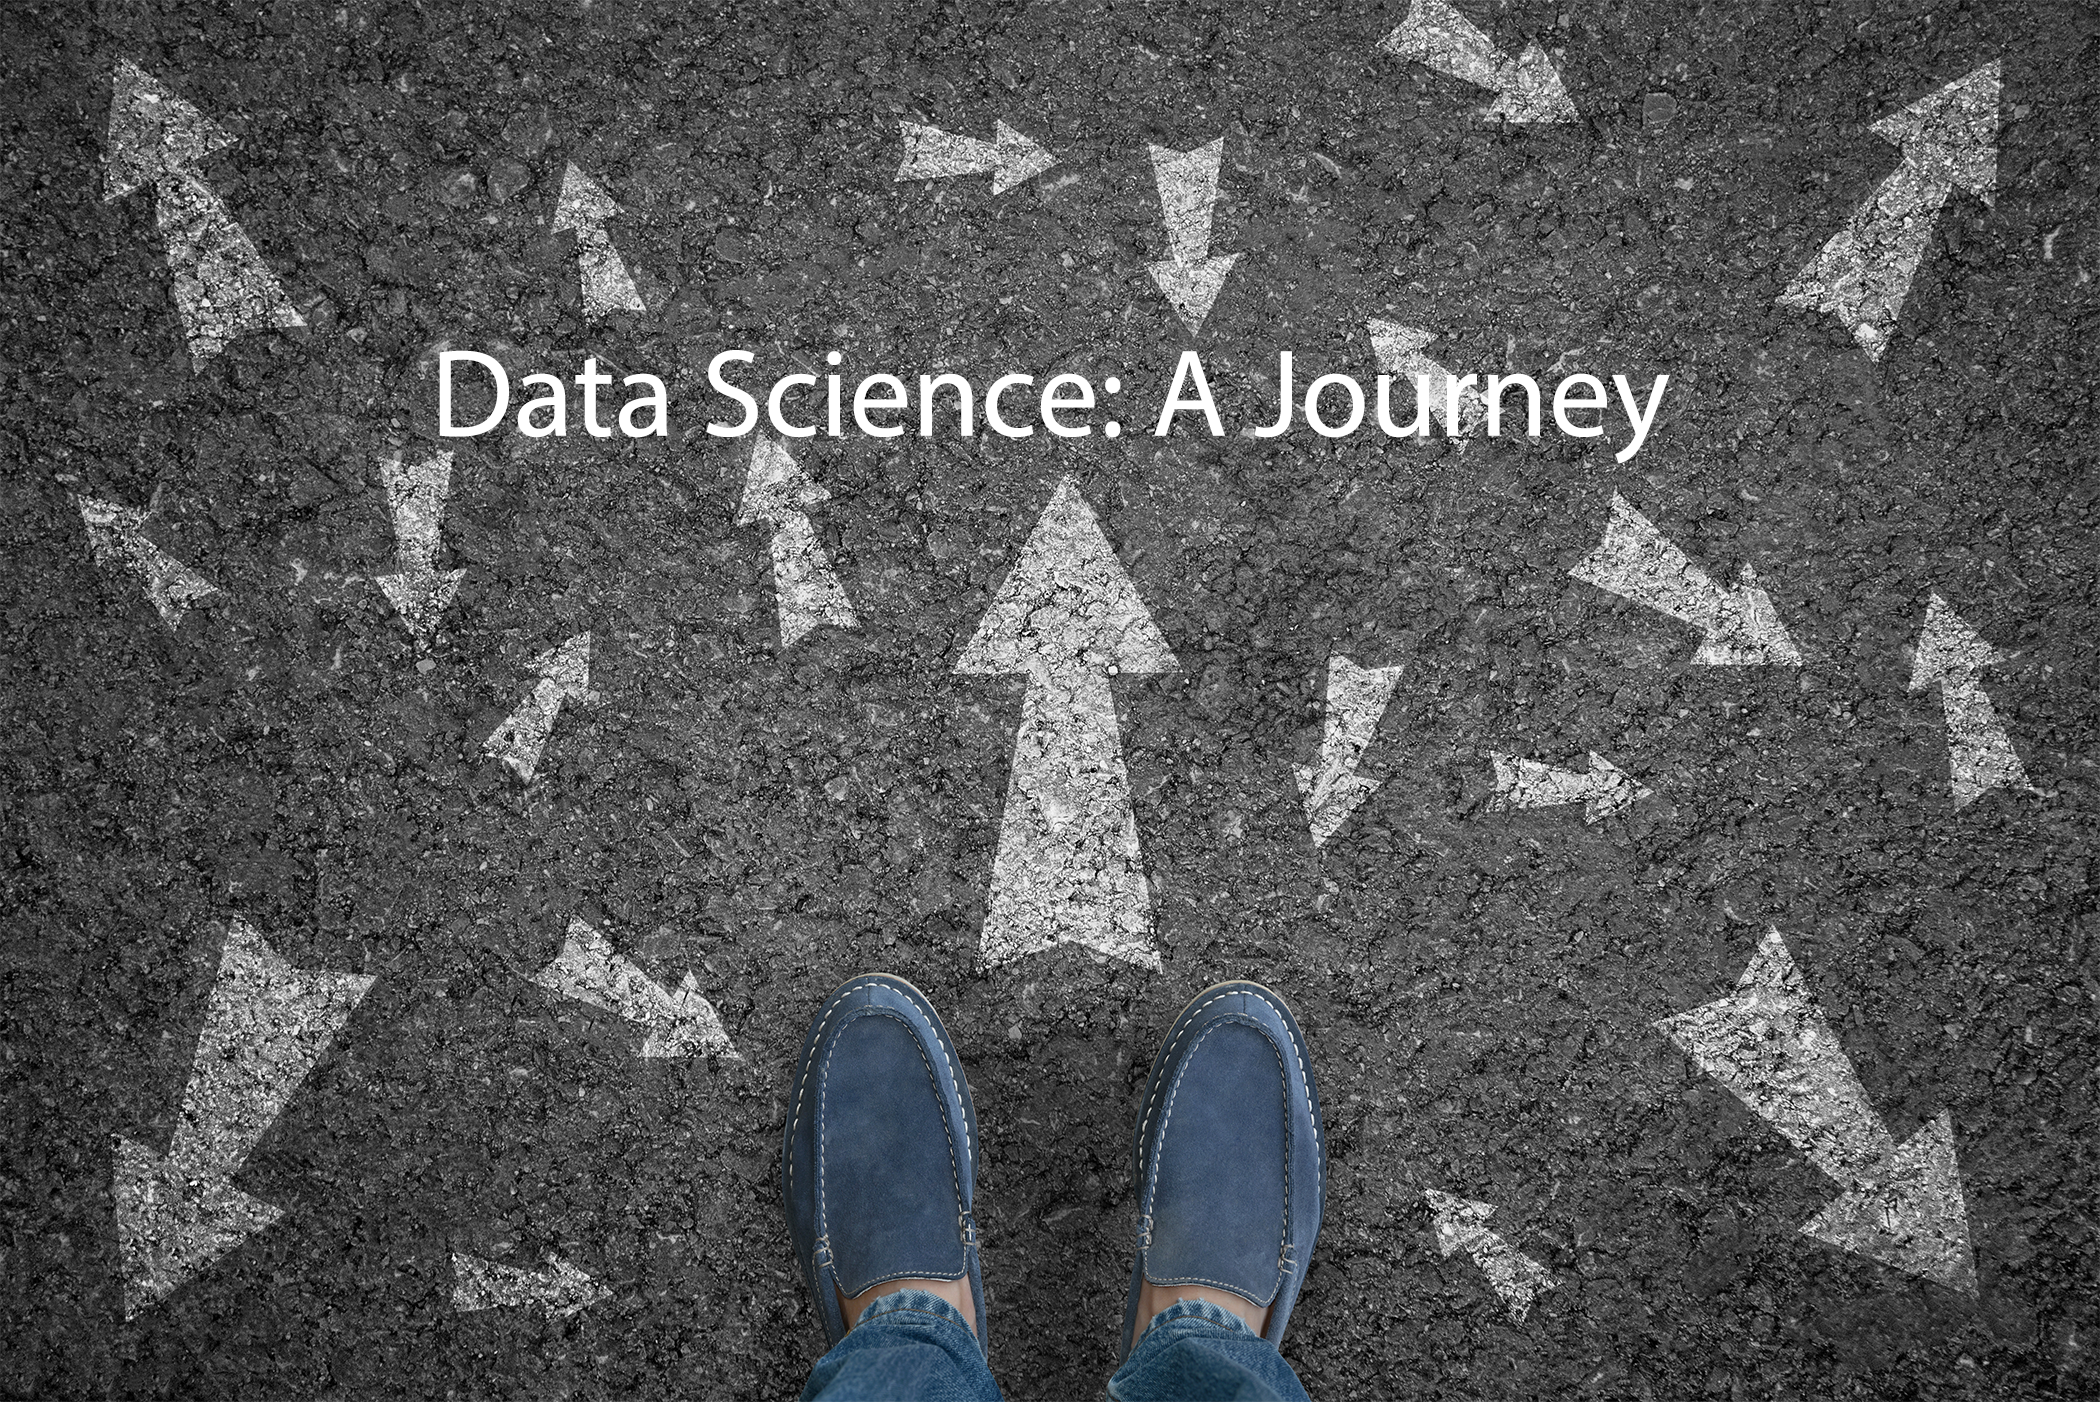 Data Science: A Journey